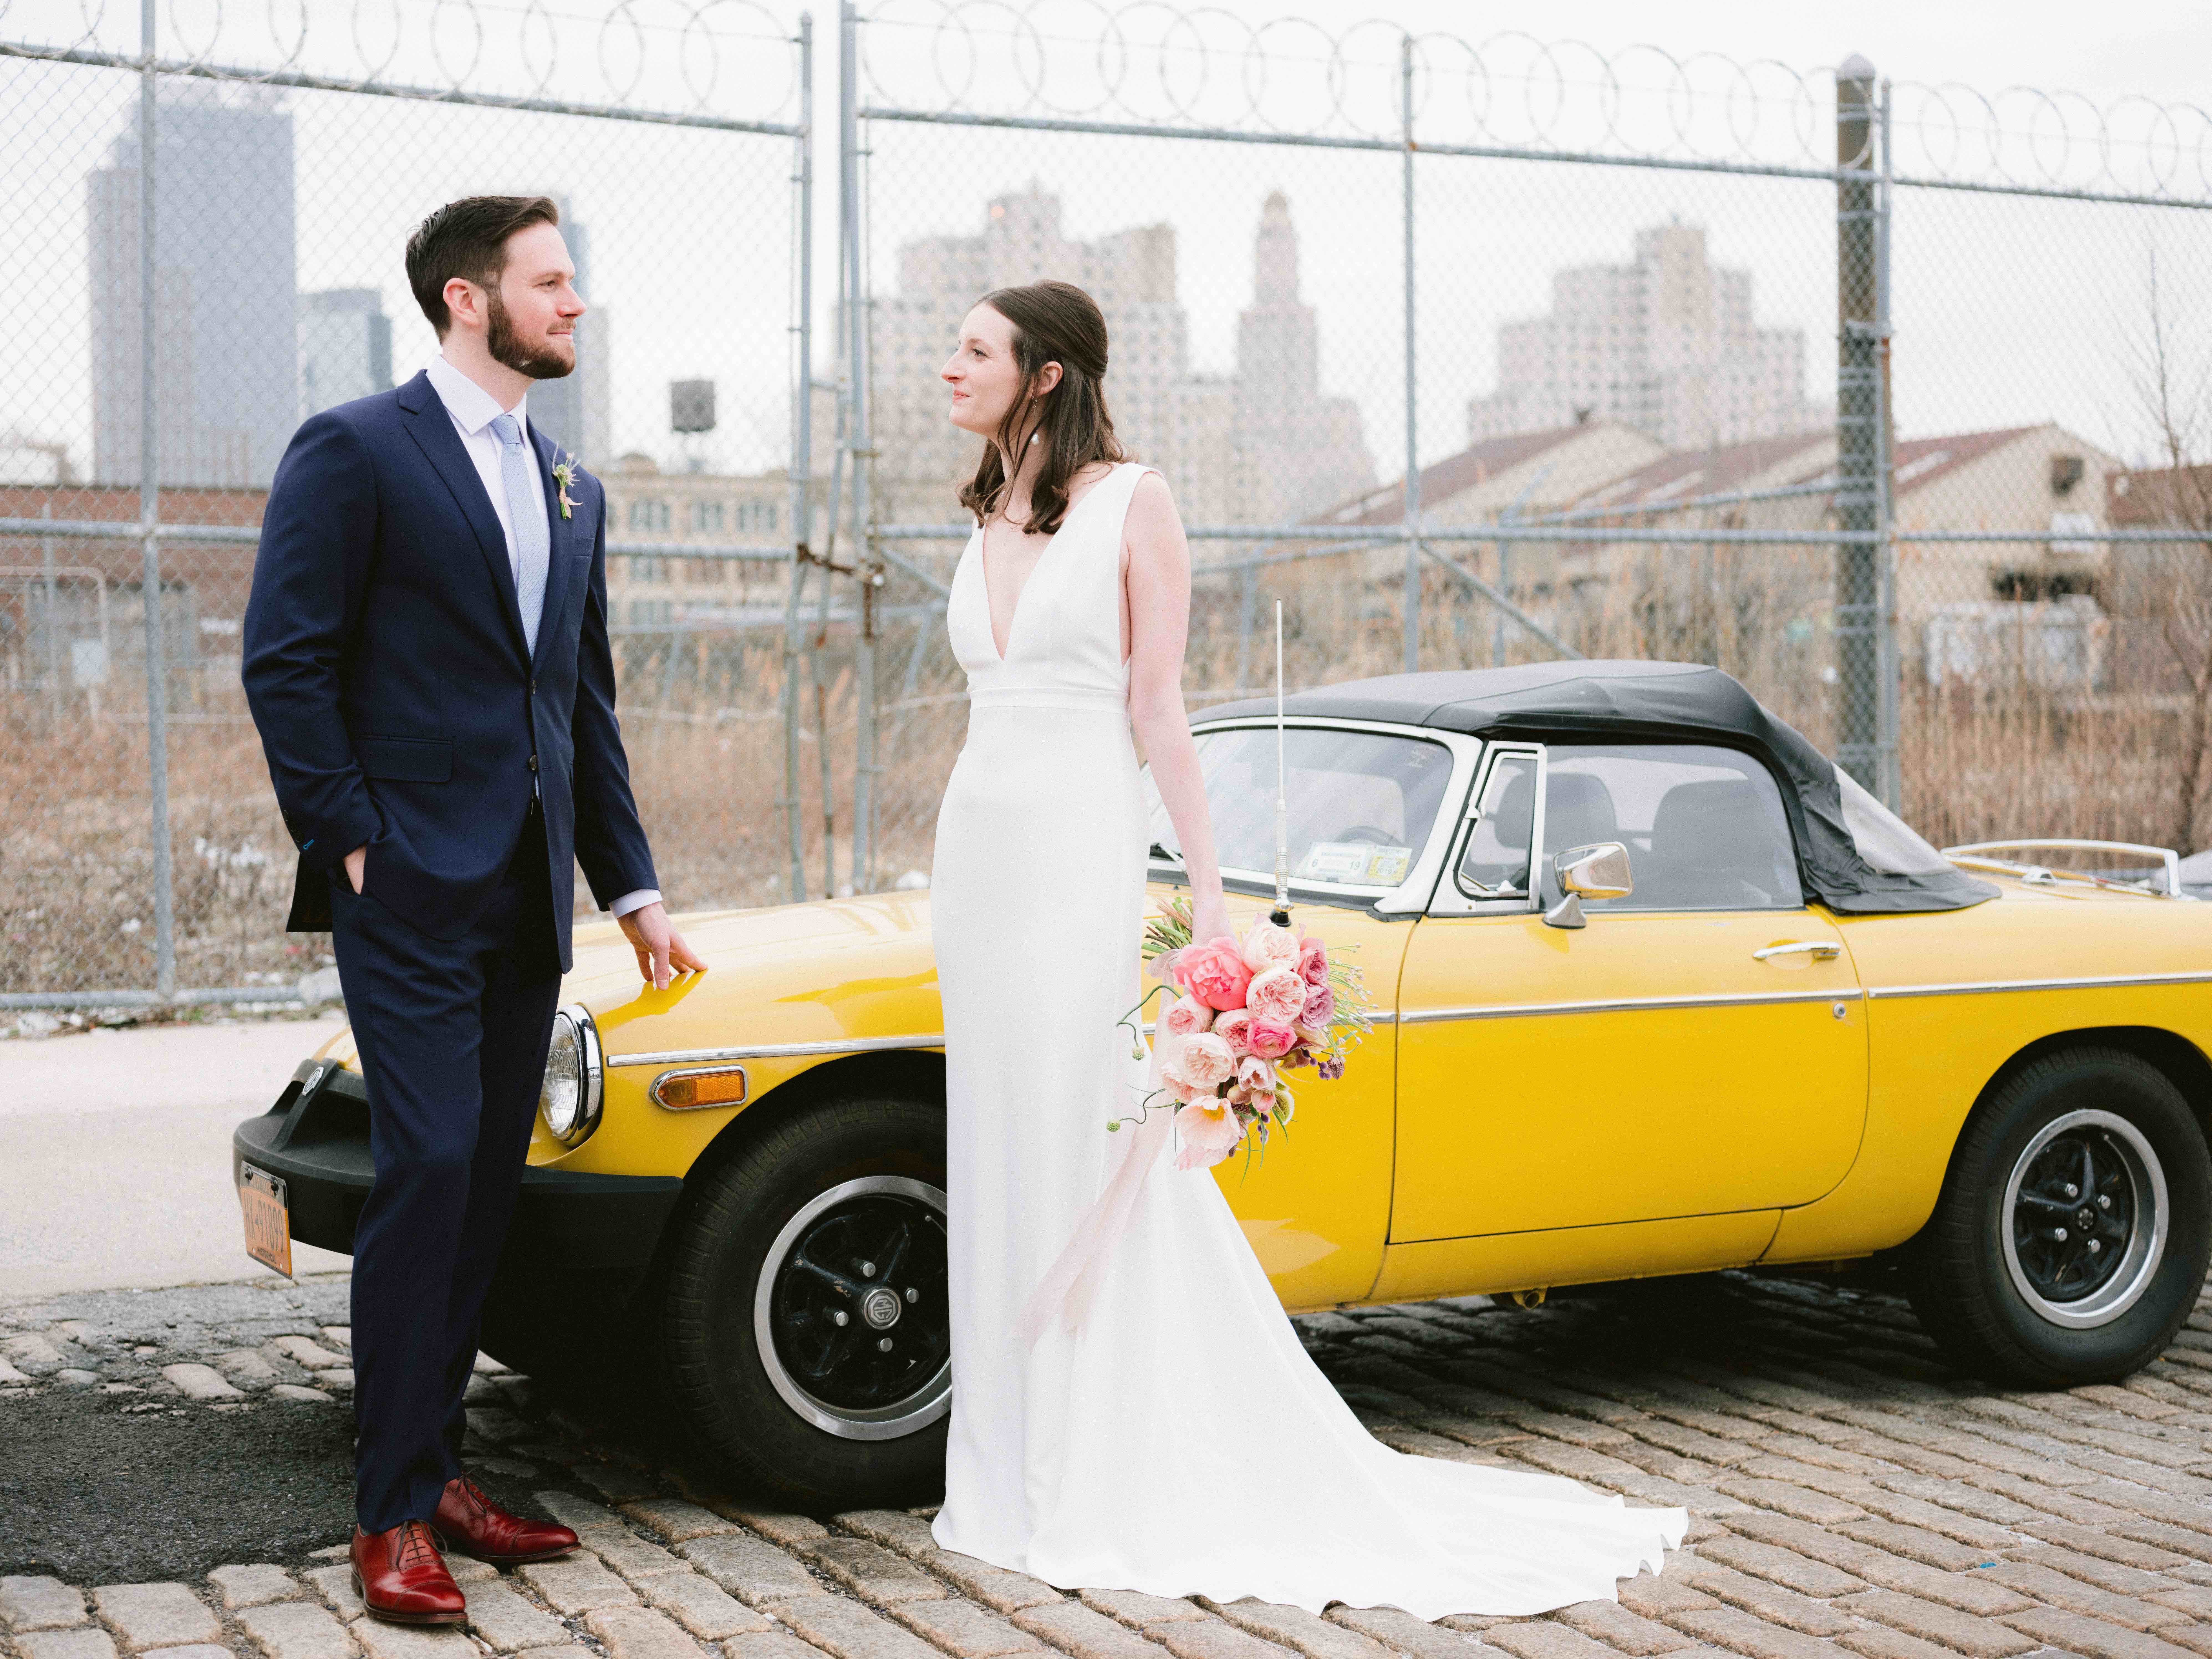 Best-501-Union-Wedding-Photography-Brooklyn-New-York11